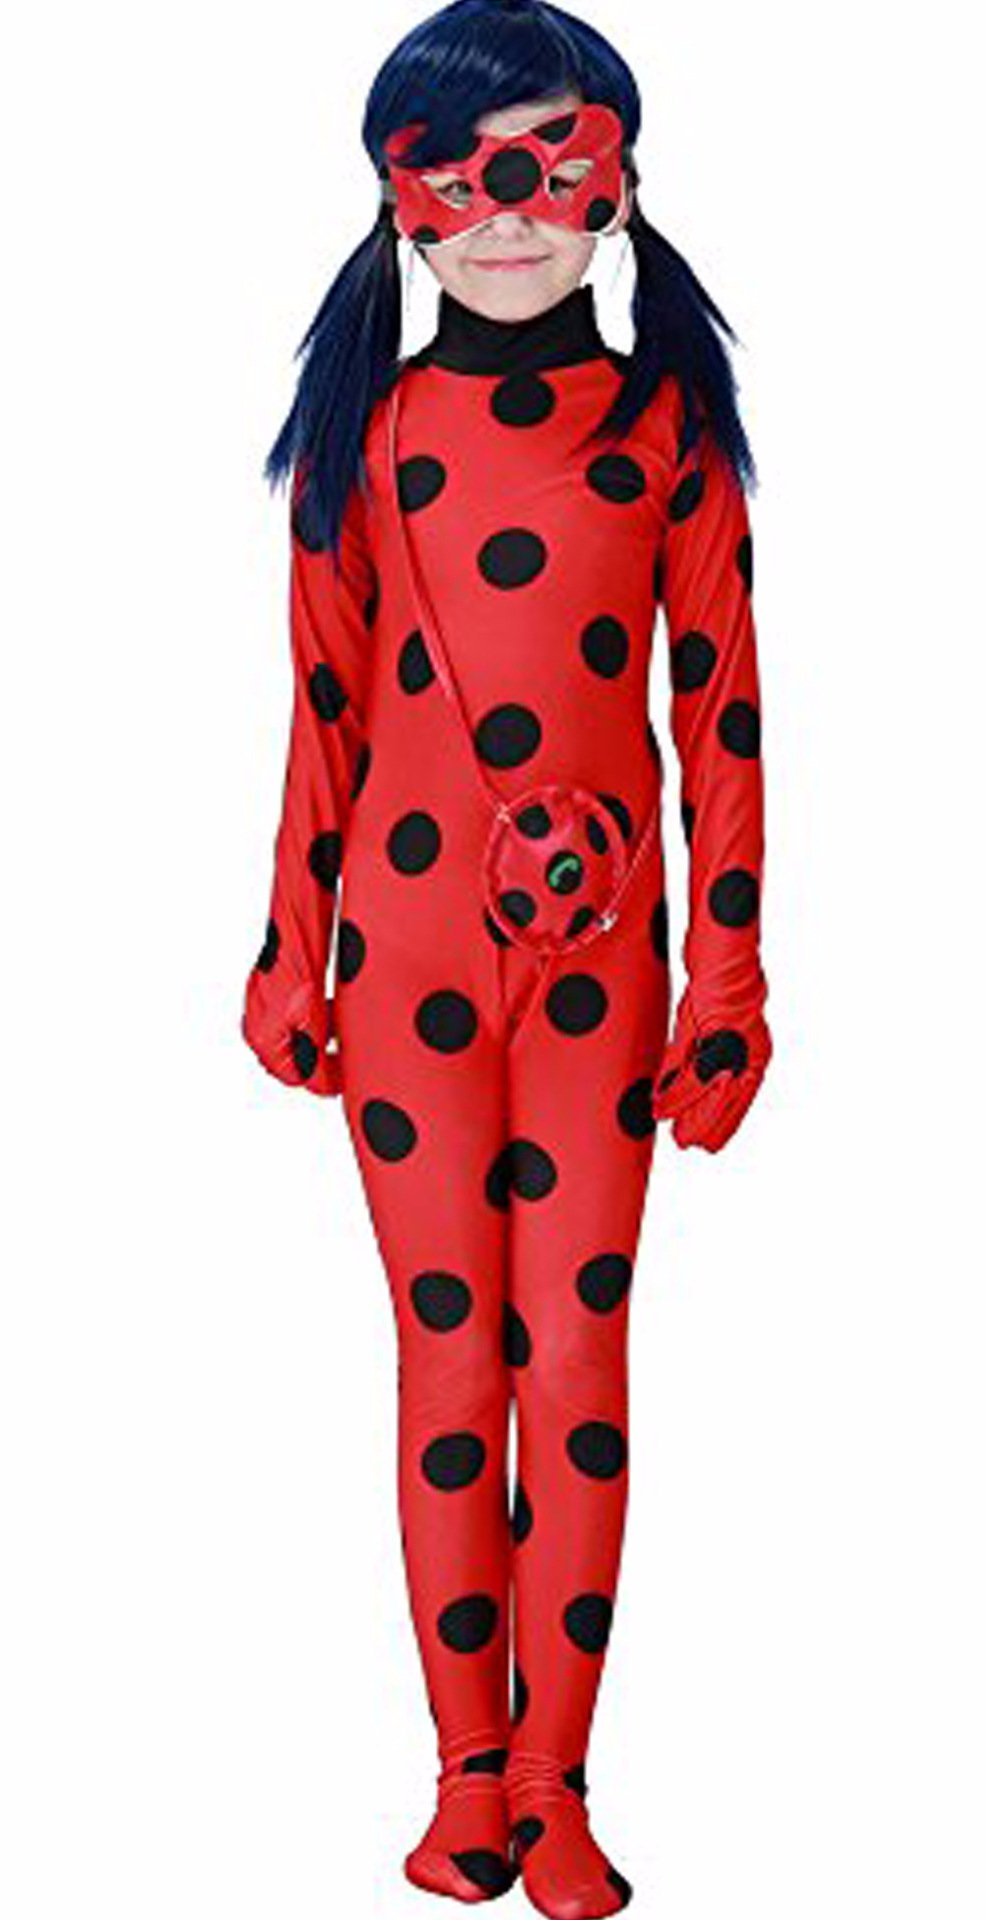 Cartoon-Miraculous-Ladybug-Marienkfer-Hfthalter-mit-Pckchen-Party-Cosplay-Kostm-Kind-und-Kindr-verfgbar-Kinder-Gre-S